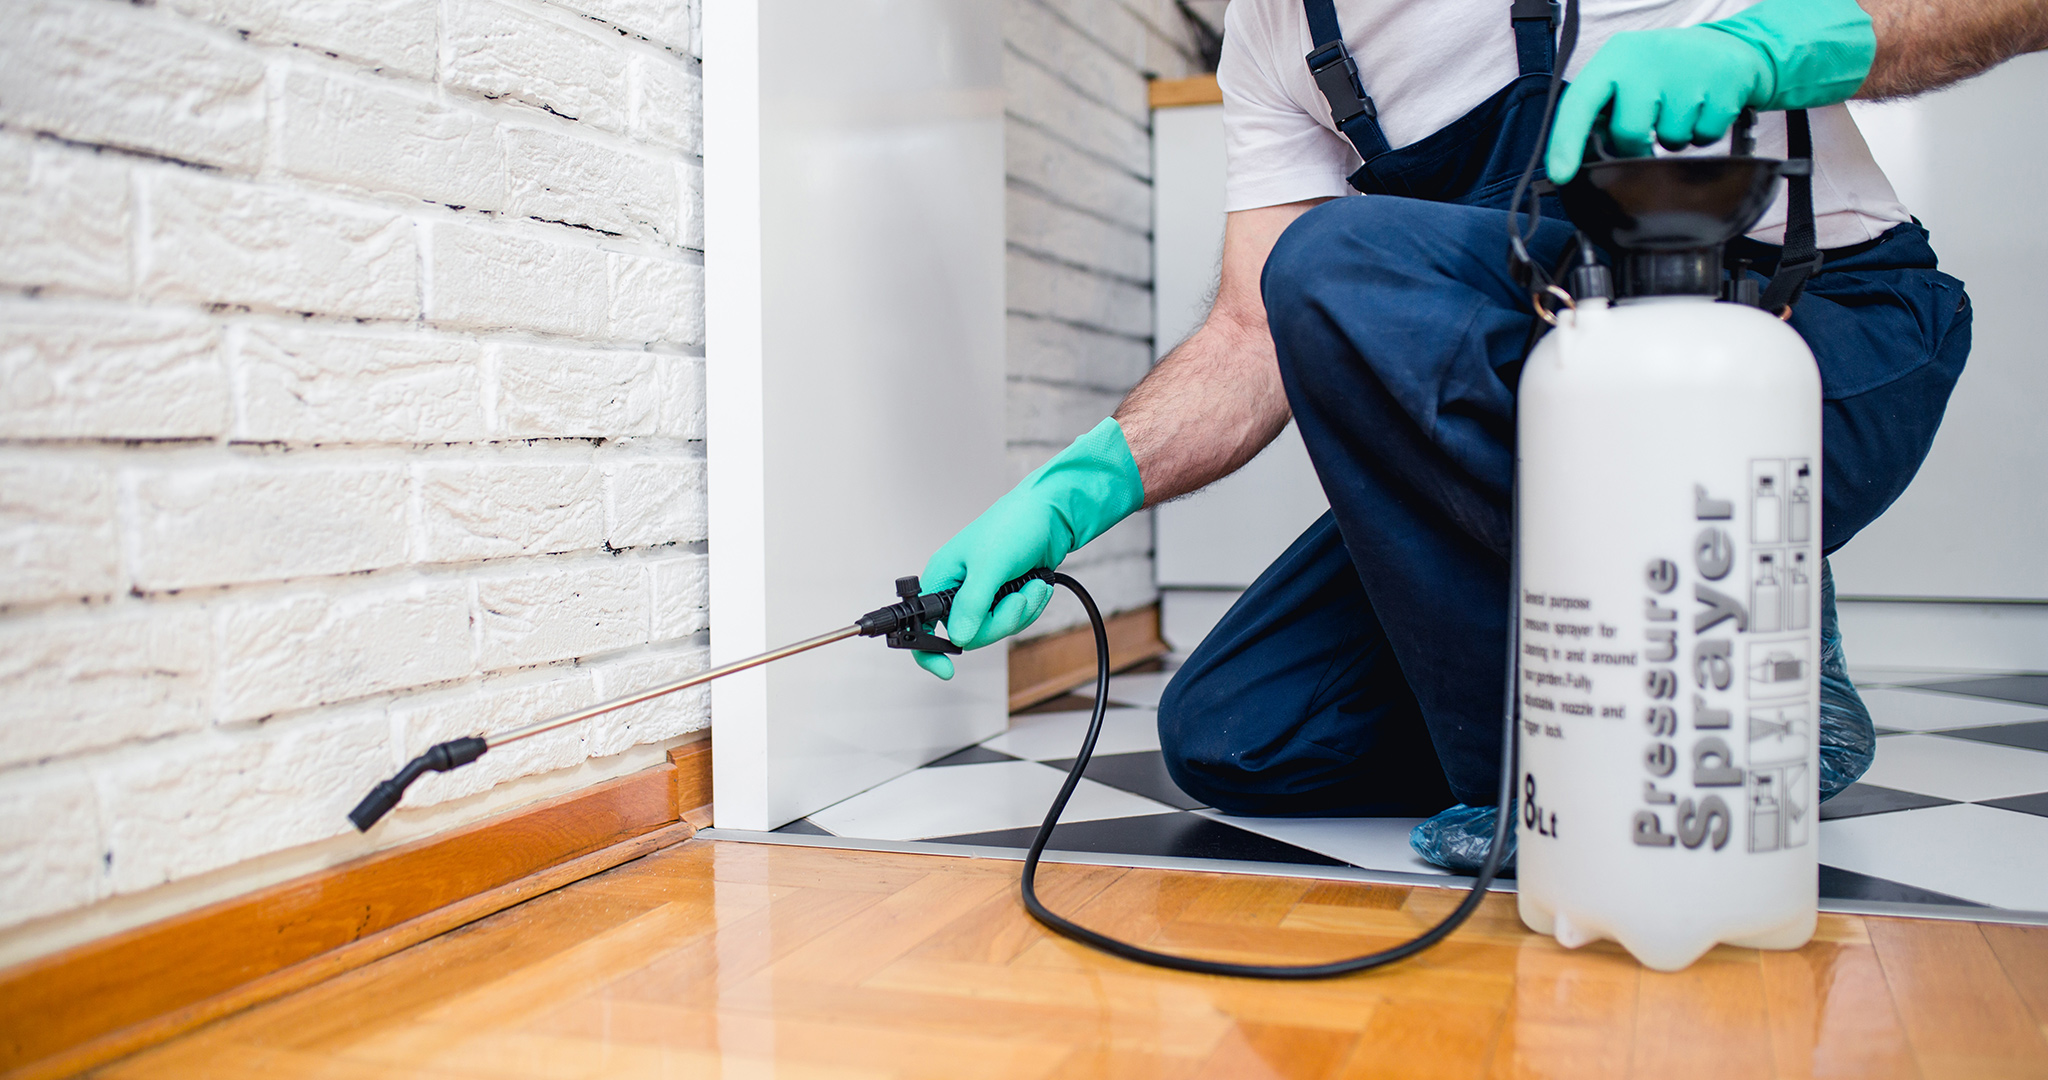 PestControl GettyImages 952779326